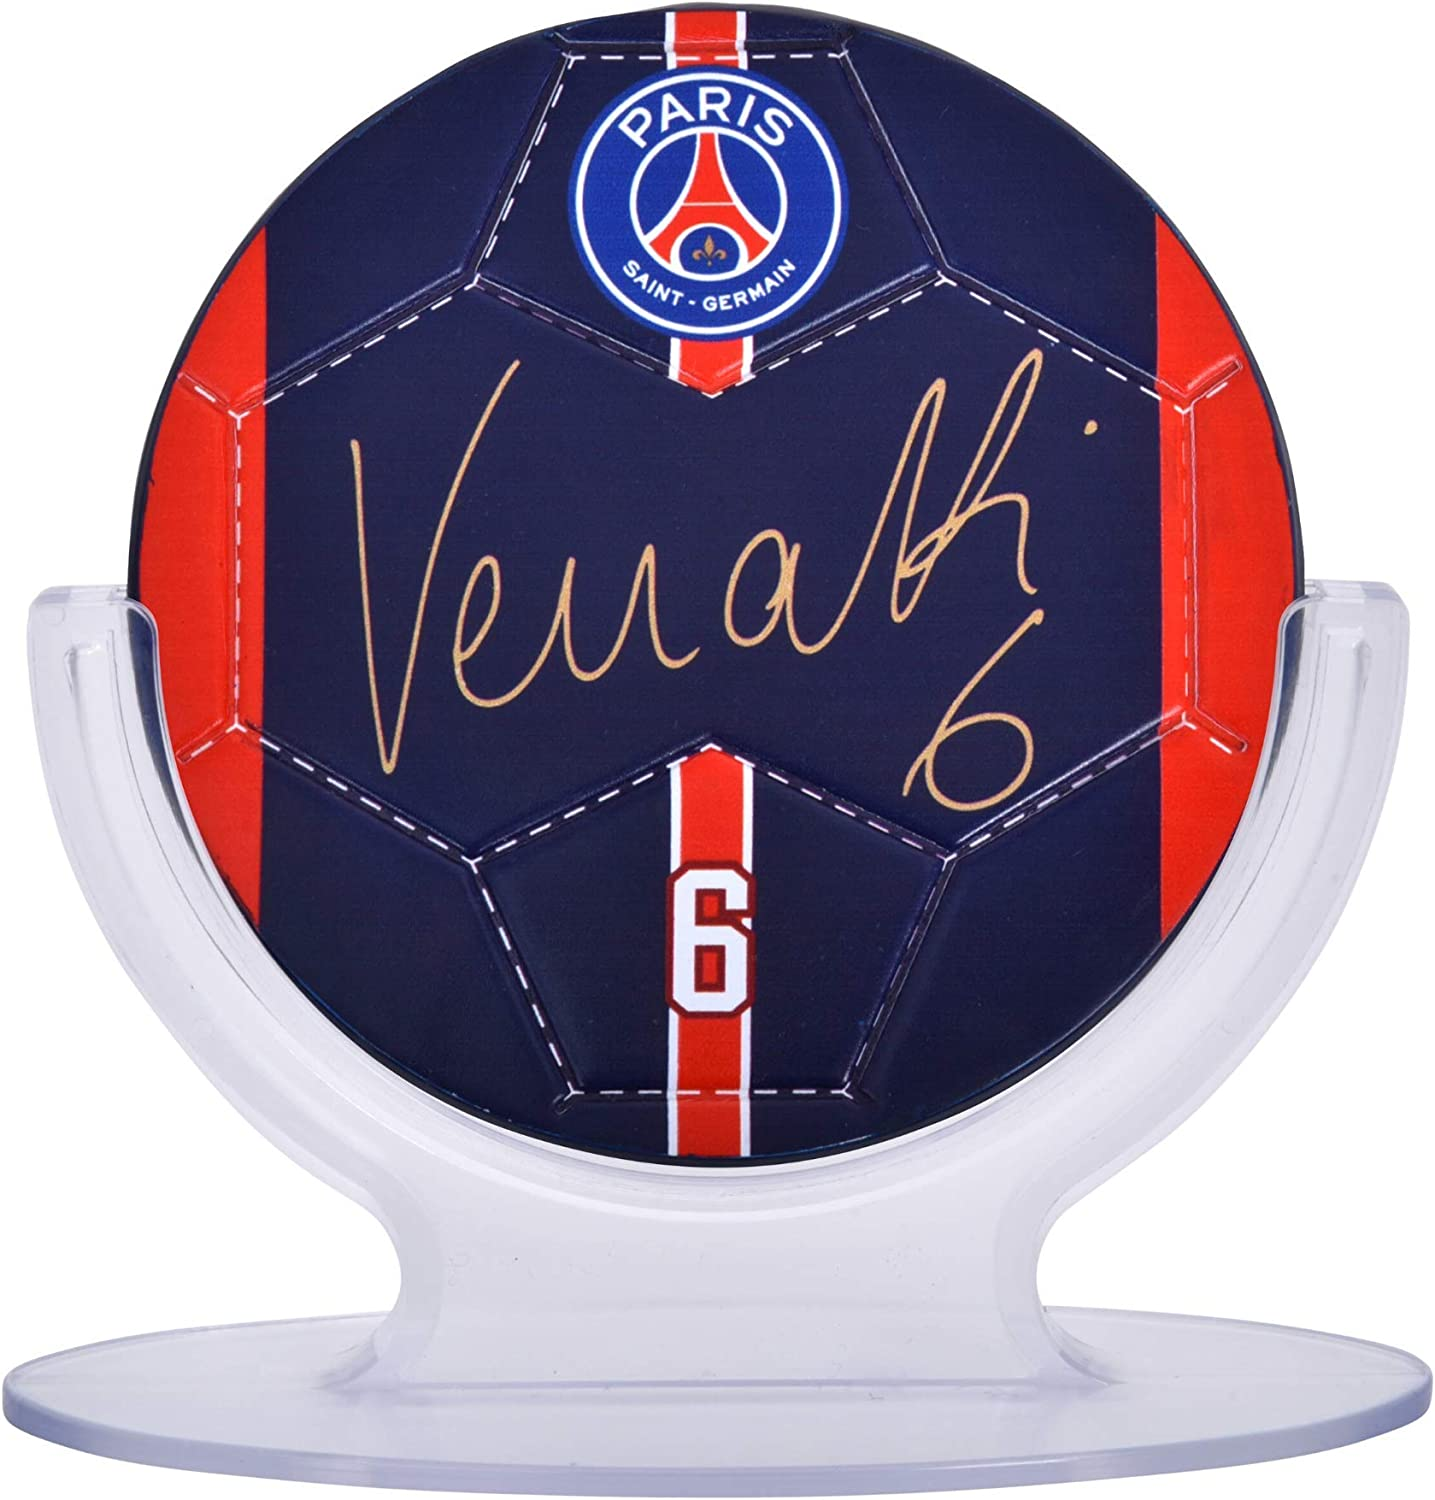 Facsimile Signed PARIS SAINT GERMAIN PSG: Signables Signature Series Official Collectors Item Soccer Signable with Player Info